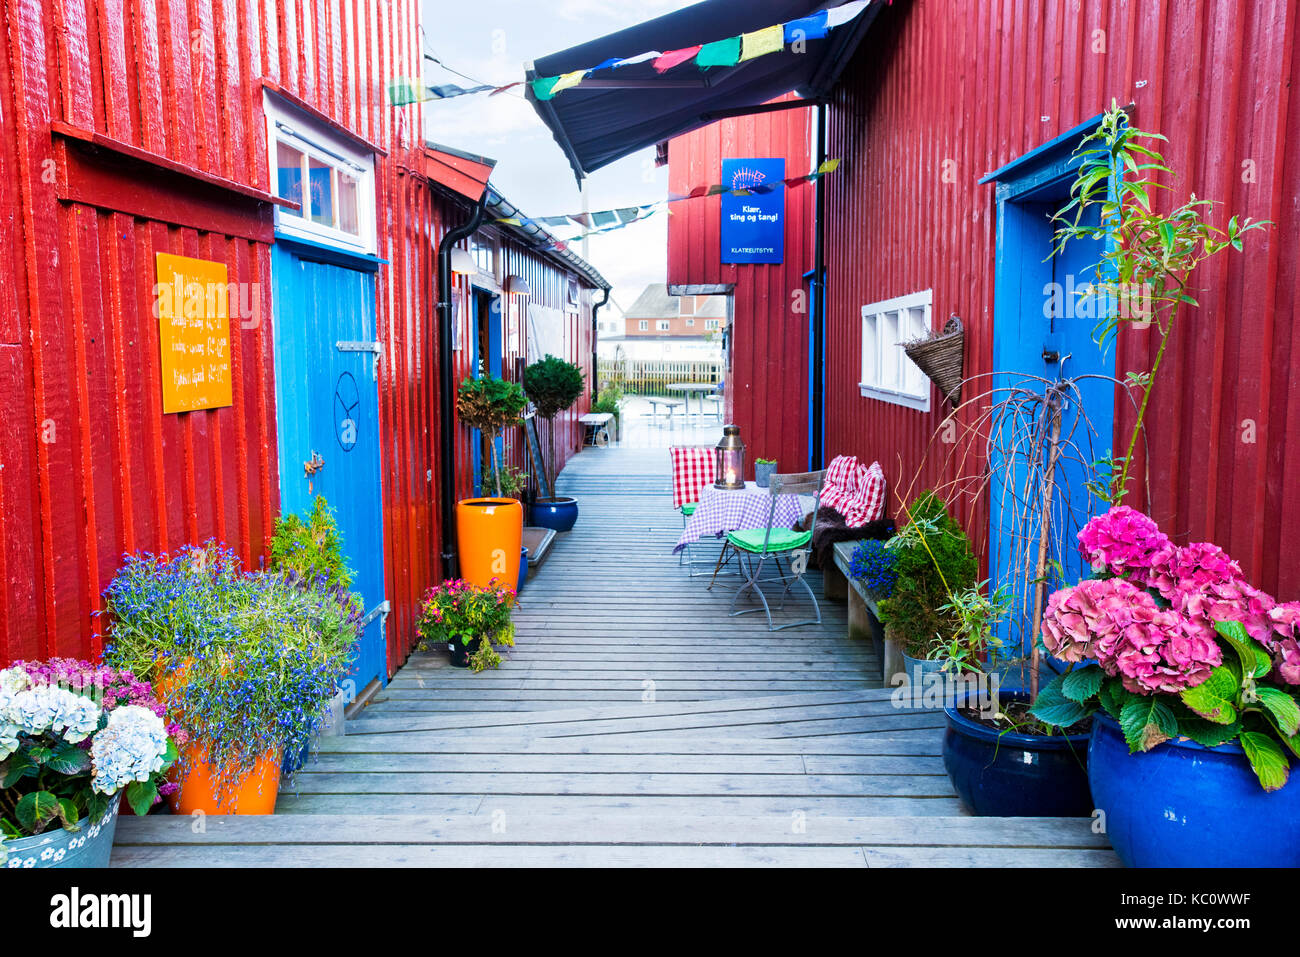 A colourful alley in the fishing village of Henningsvaer, Lofoten, Norway - Stock Image